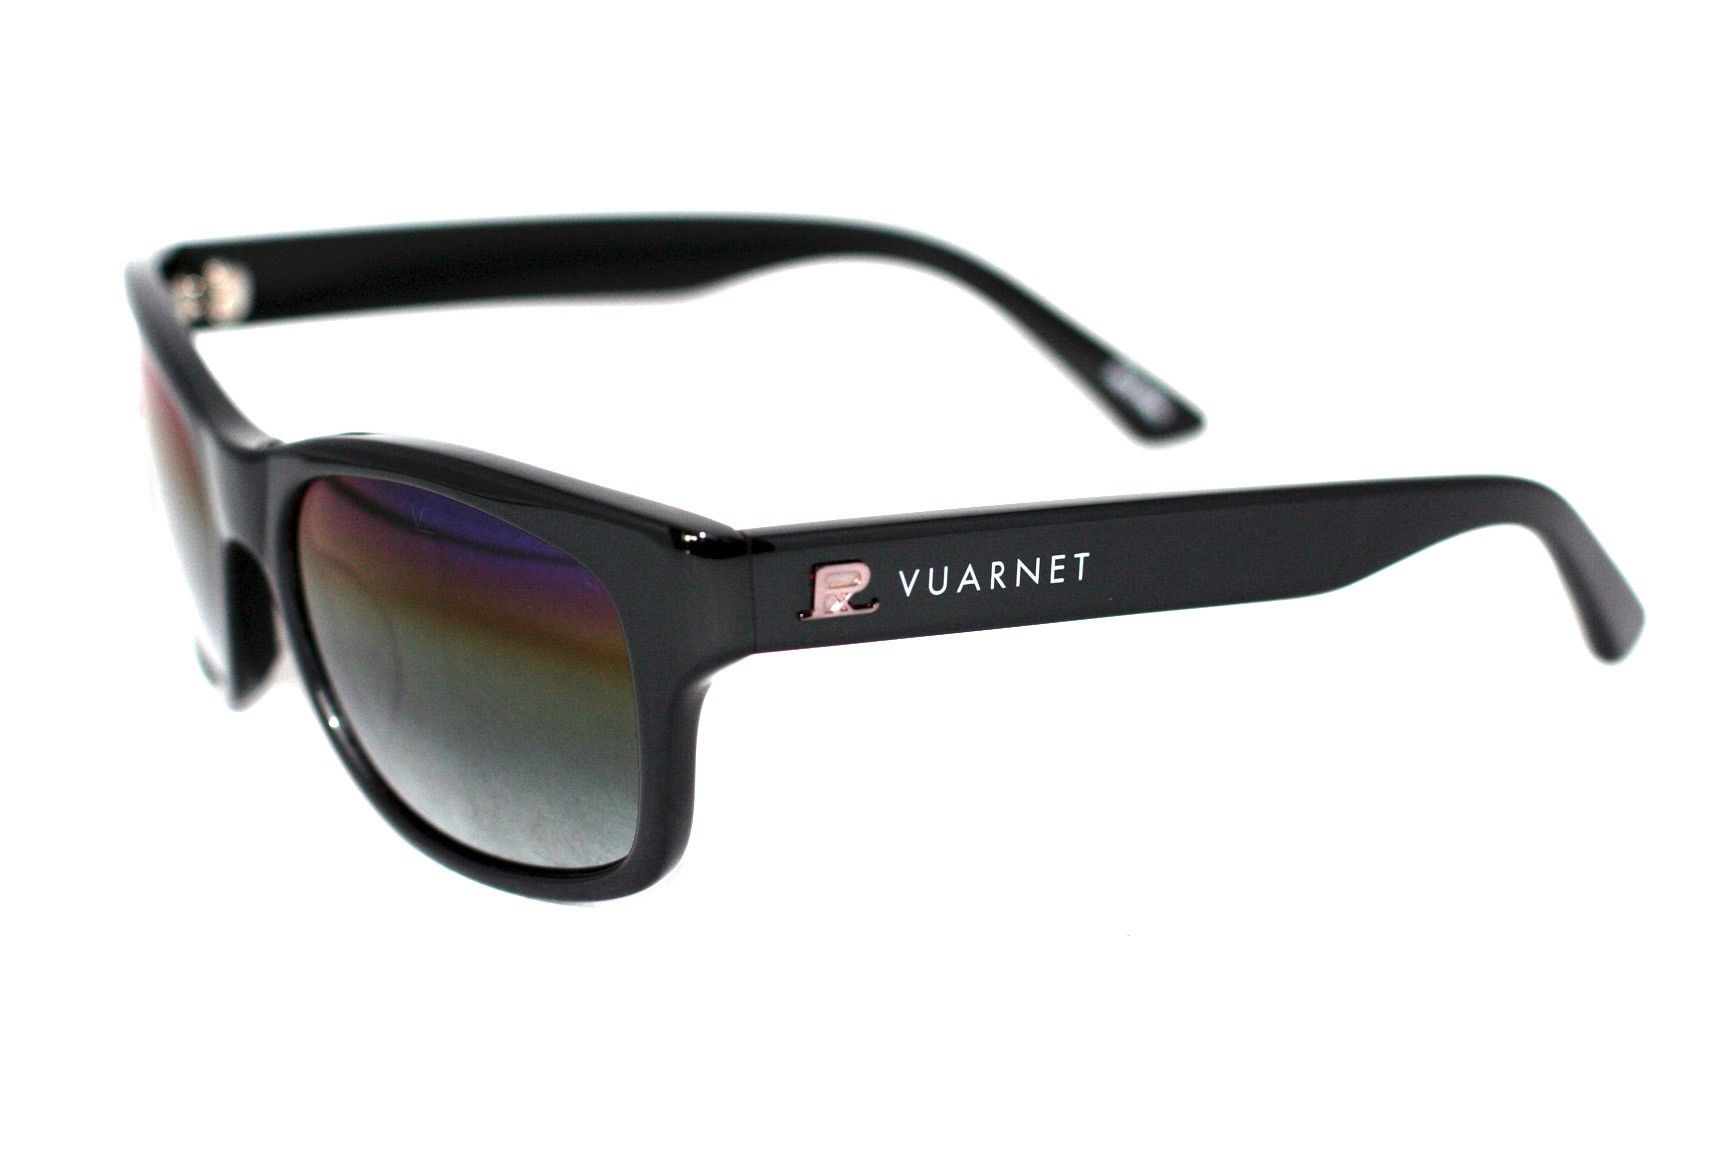 12e9b06a31 VUARNET SUNGLASSES VL1101 - BLACK